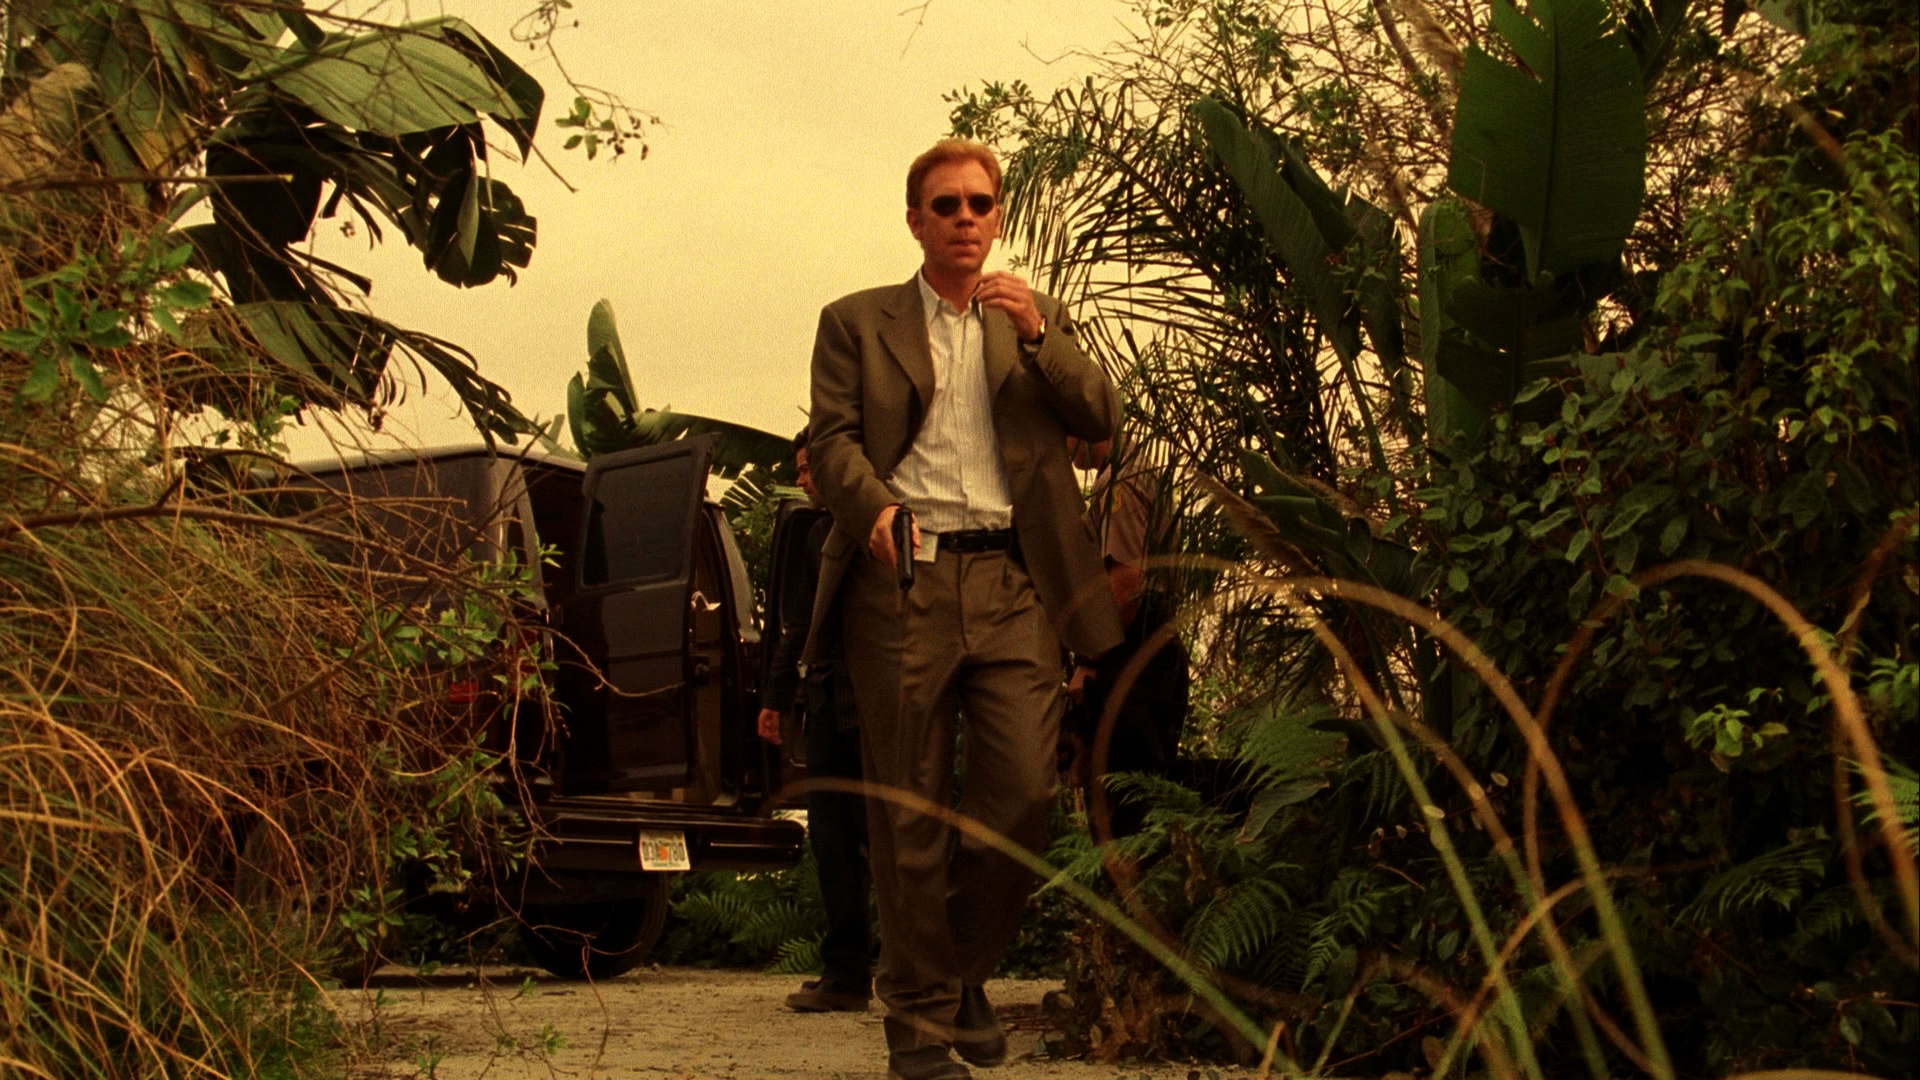 Watch CSI: Miami Season 2 Episode 17: Money for Nothing - Full show on CBS  All Access